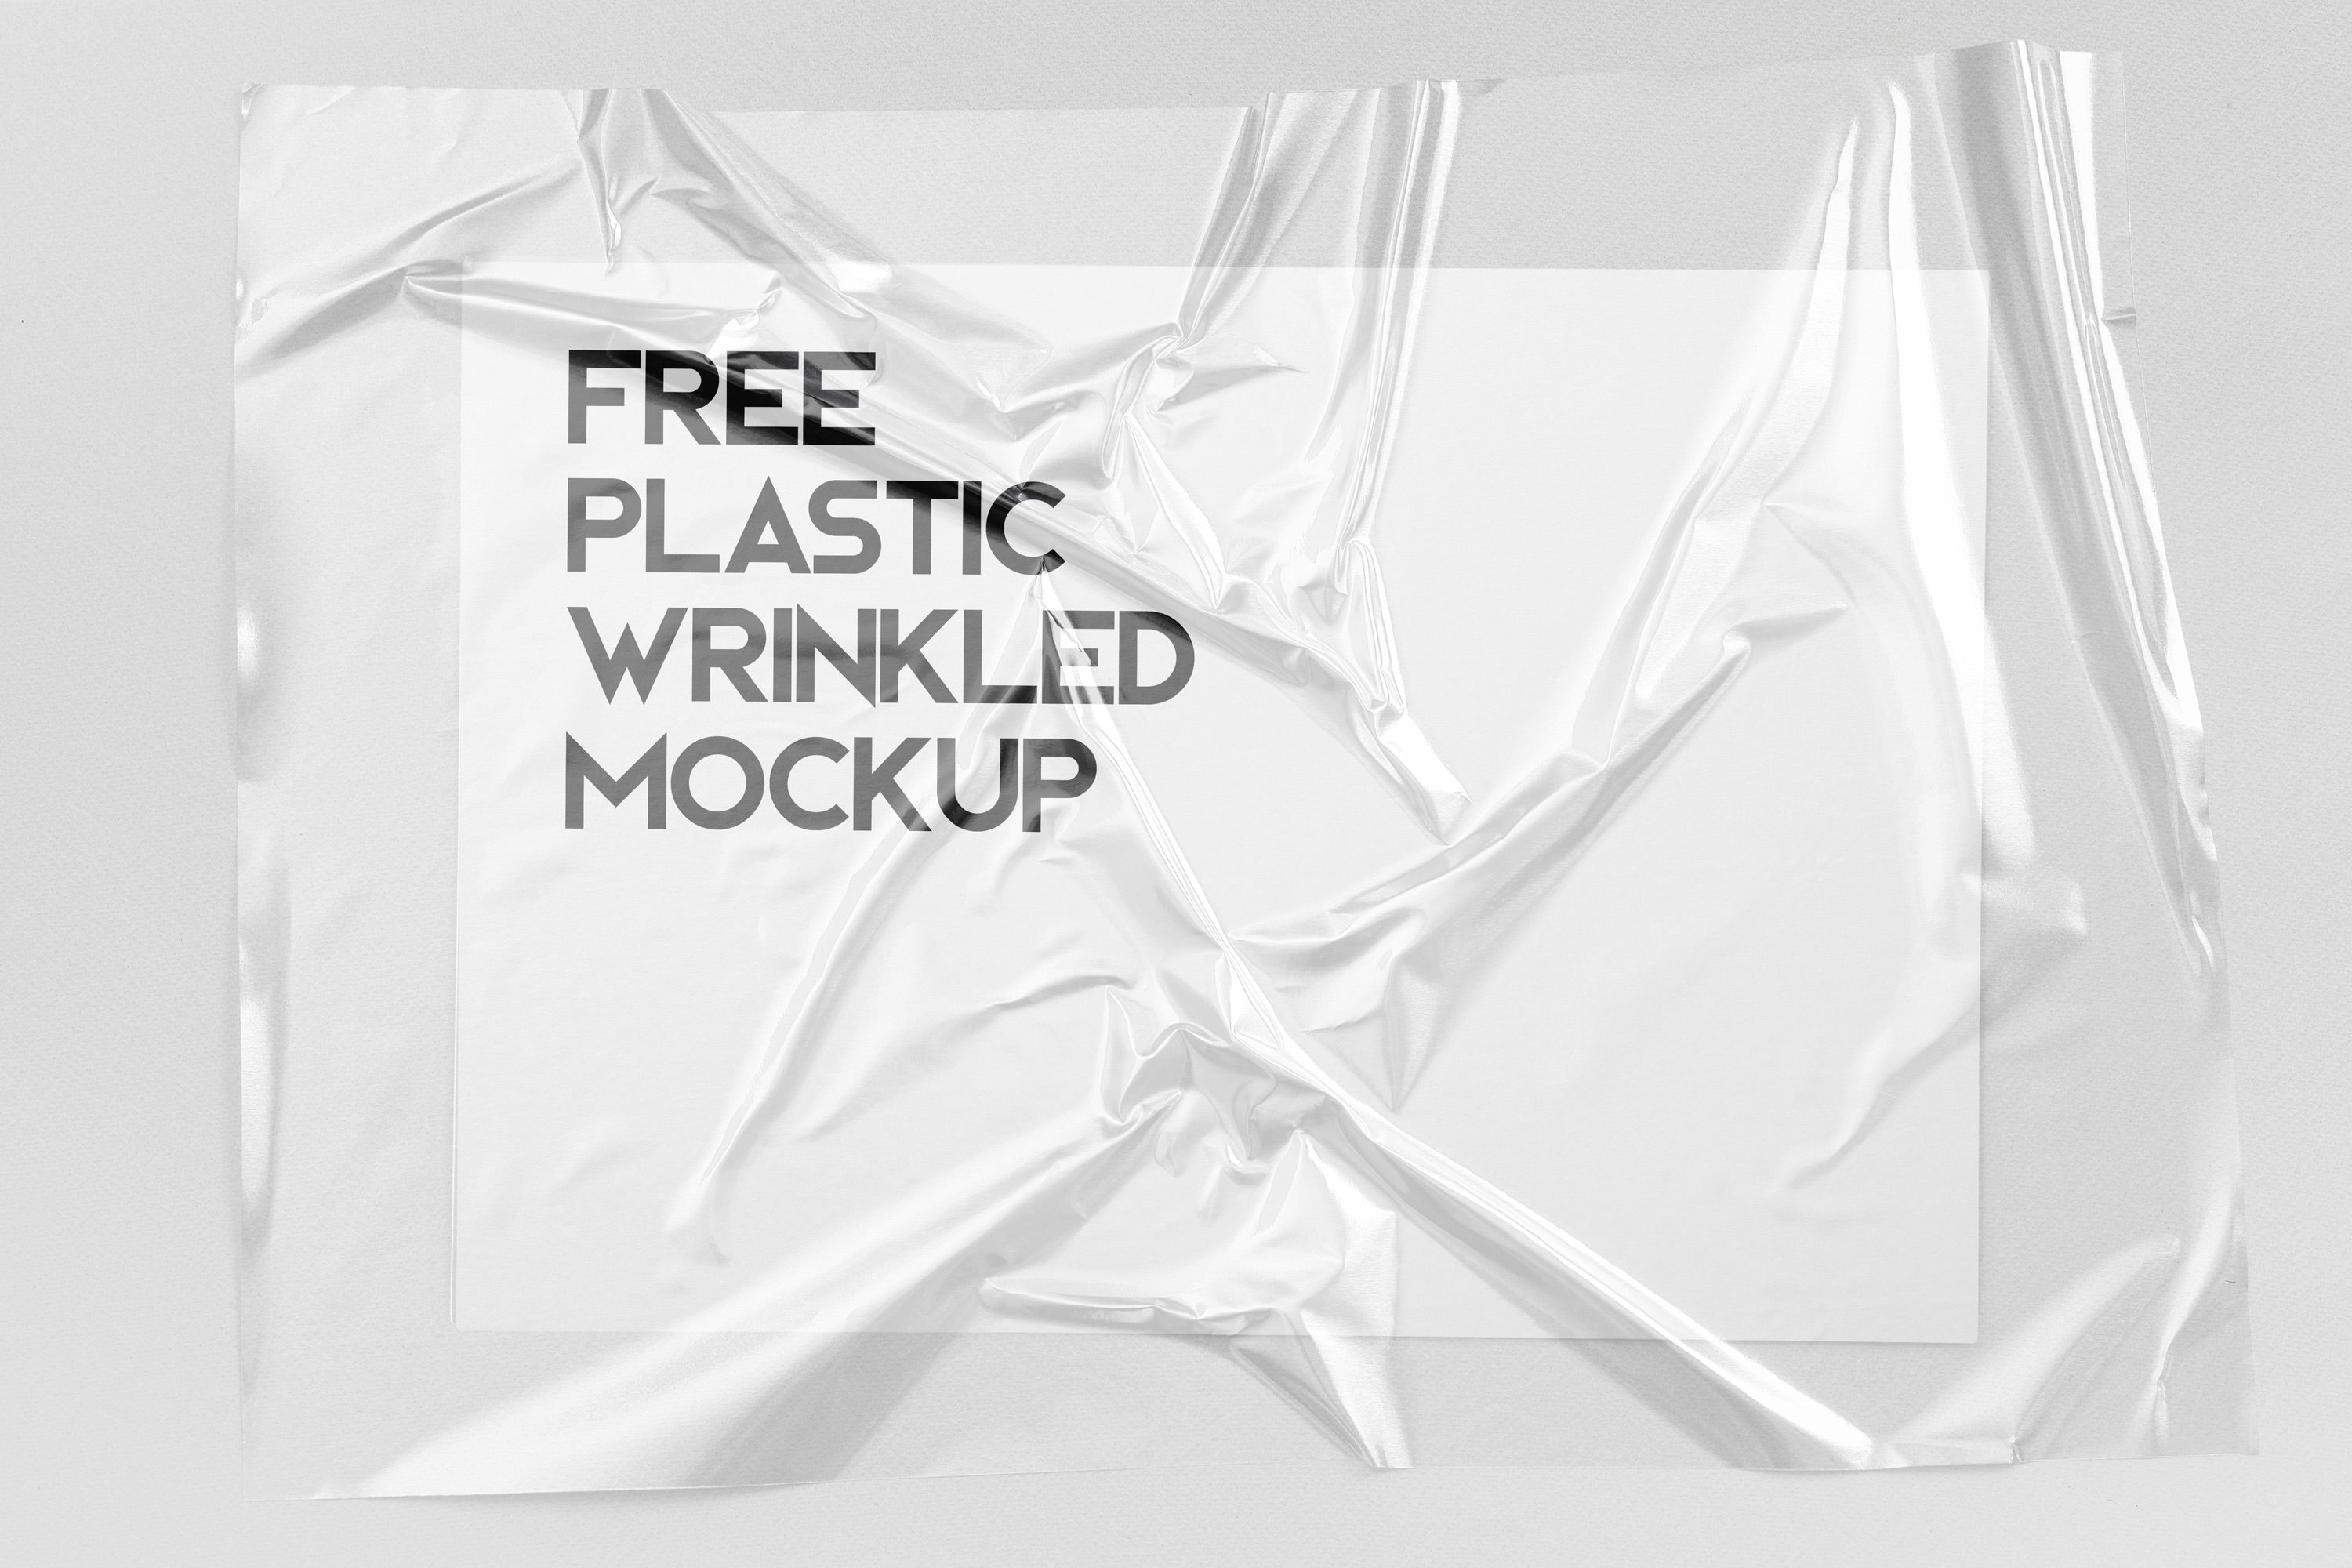 Free Plastic Wrinkled Reflections Mockup